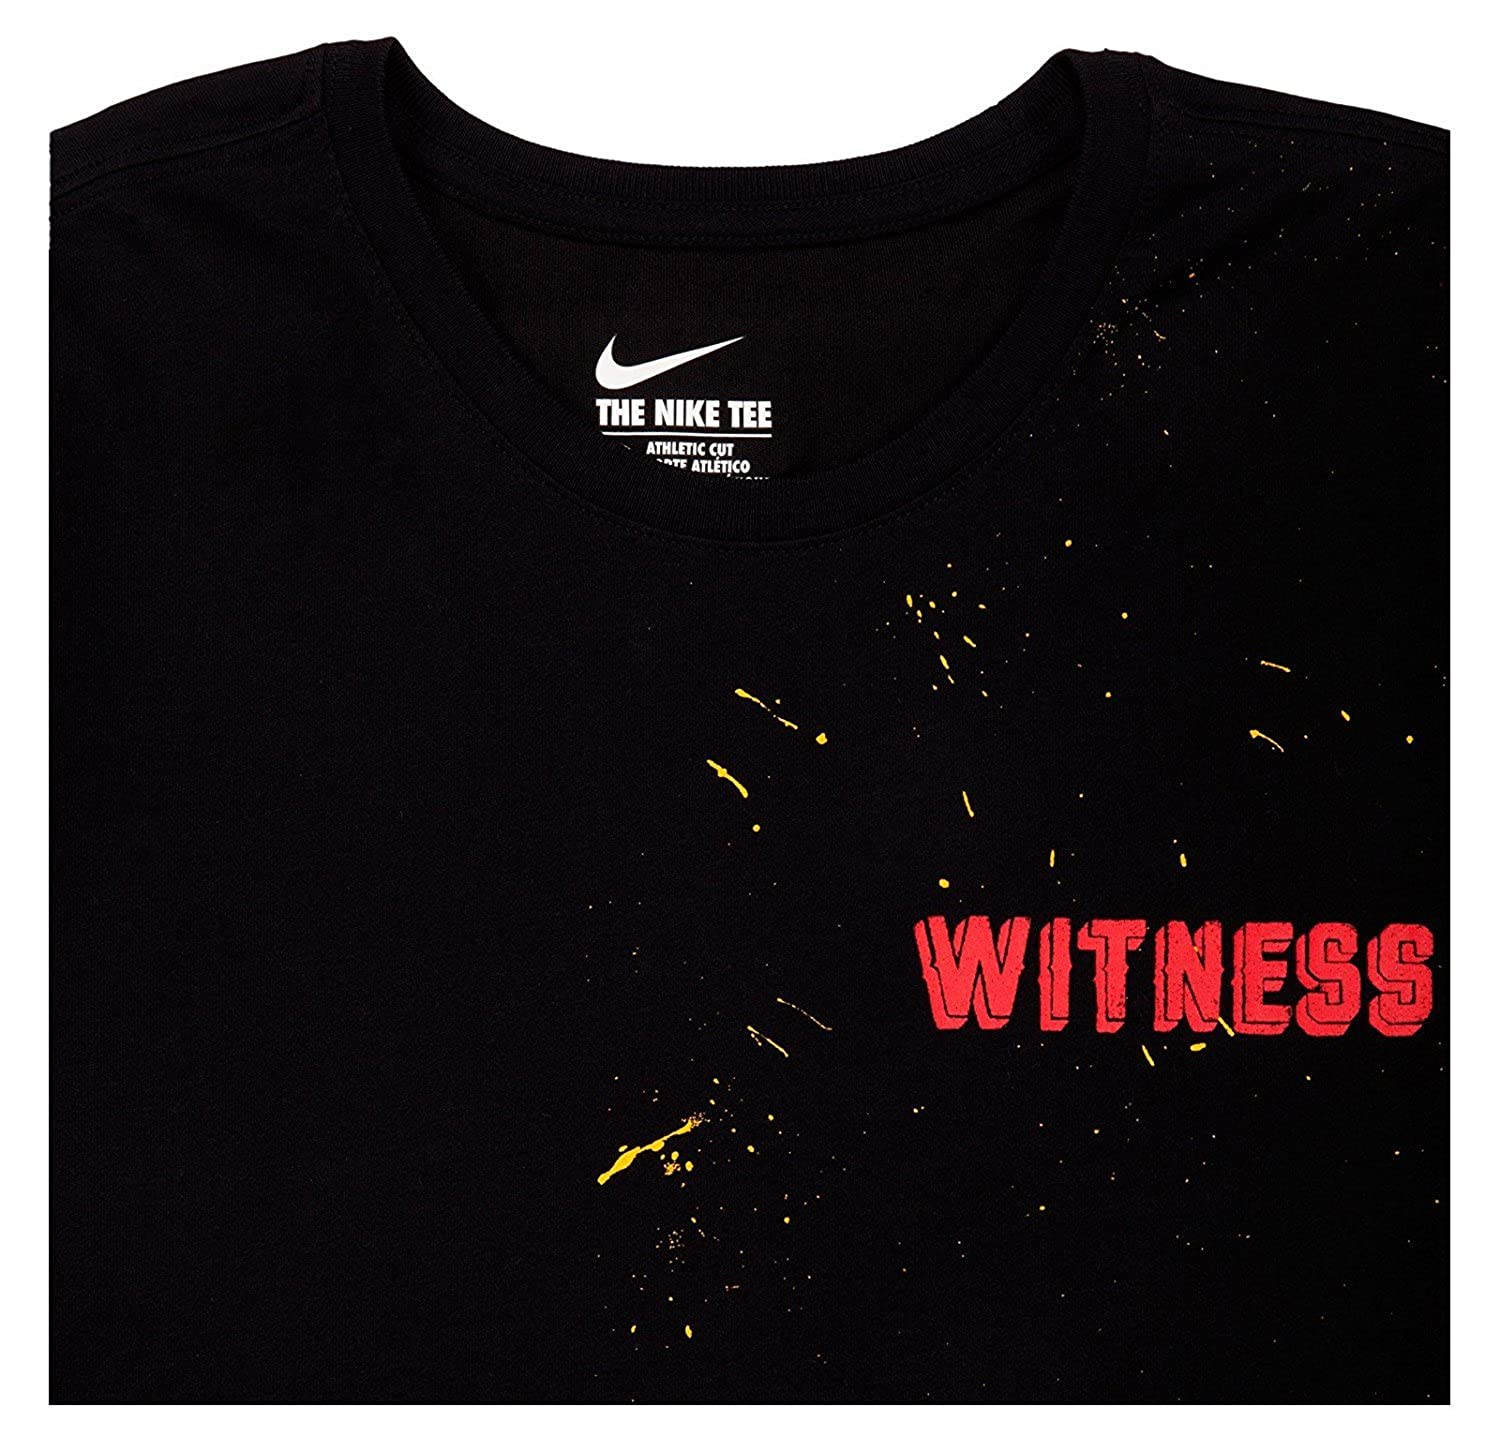 79a21ec6 Amazon.com: Size 3XLarge Men's Nike Witness Tee 802665 010 Black Red  everyday wear: Sports & Outdoors